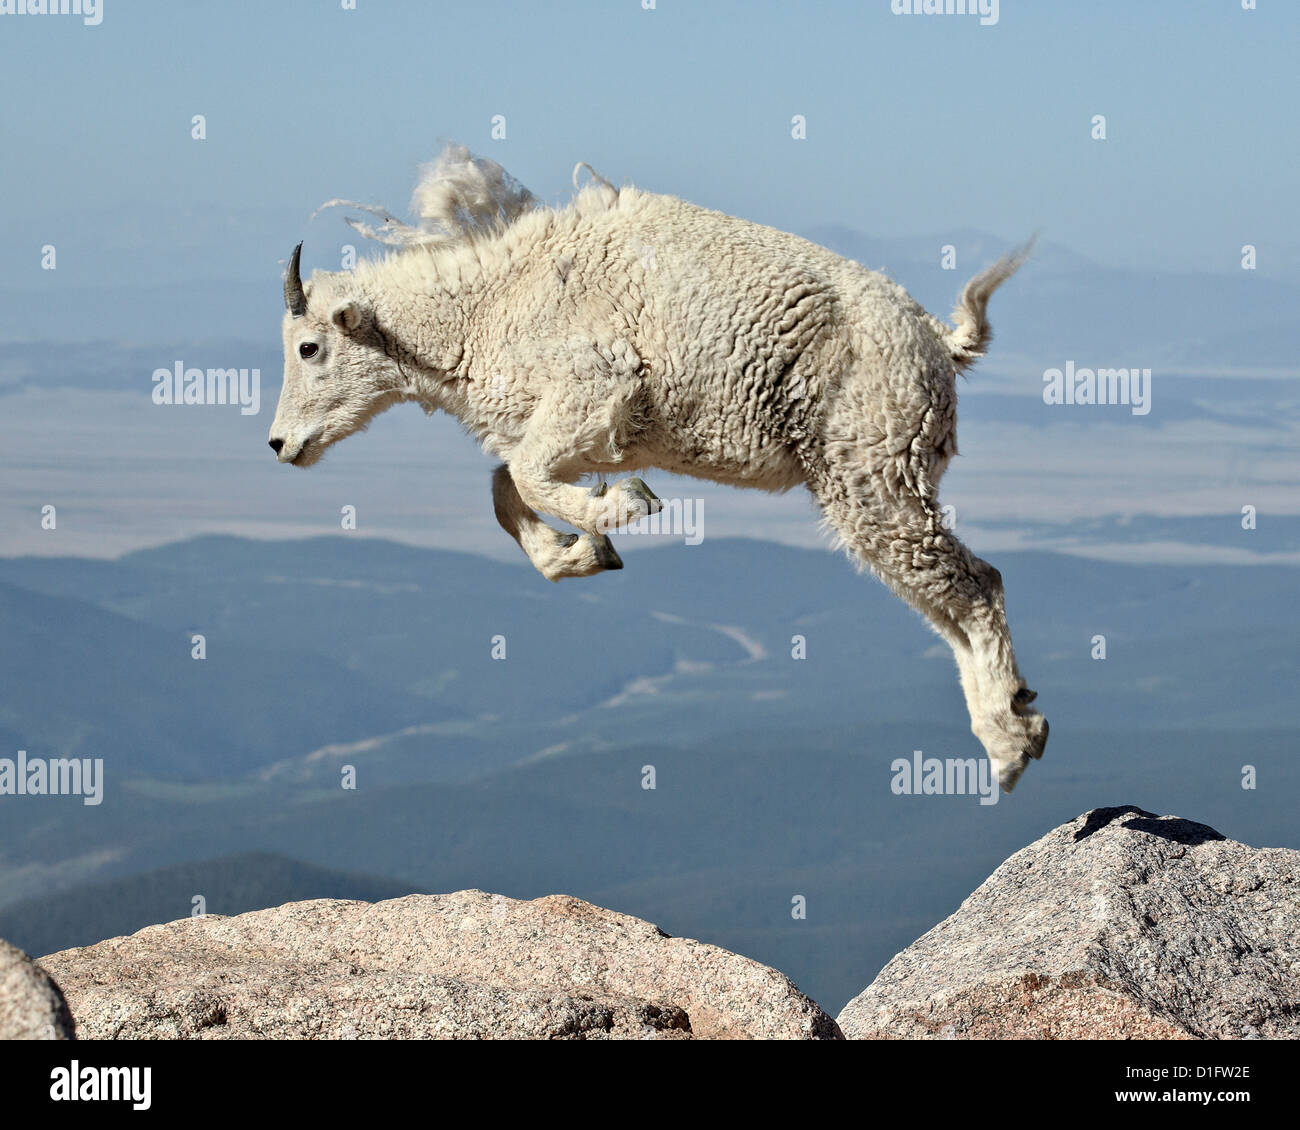 Mountain goat (Oreamnos americanus) yearling jumping, Mount Evans, Arapaho-Roosevelt National Forest, Colorado, Stock Photo